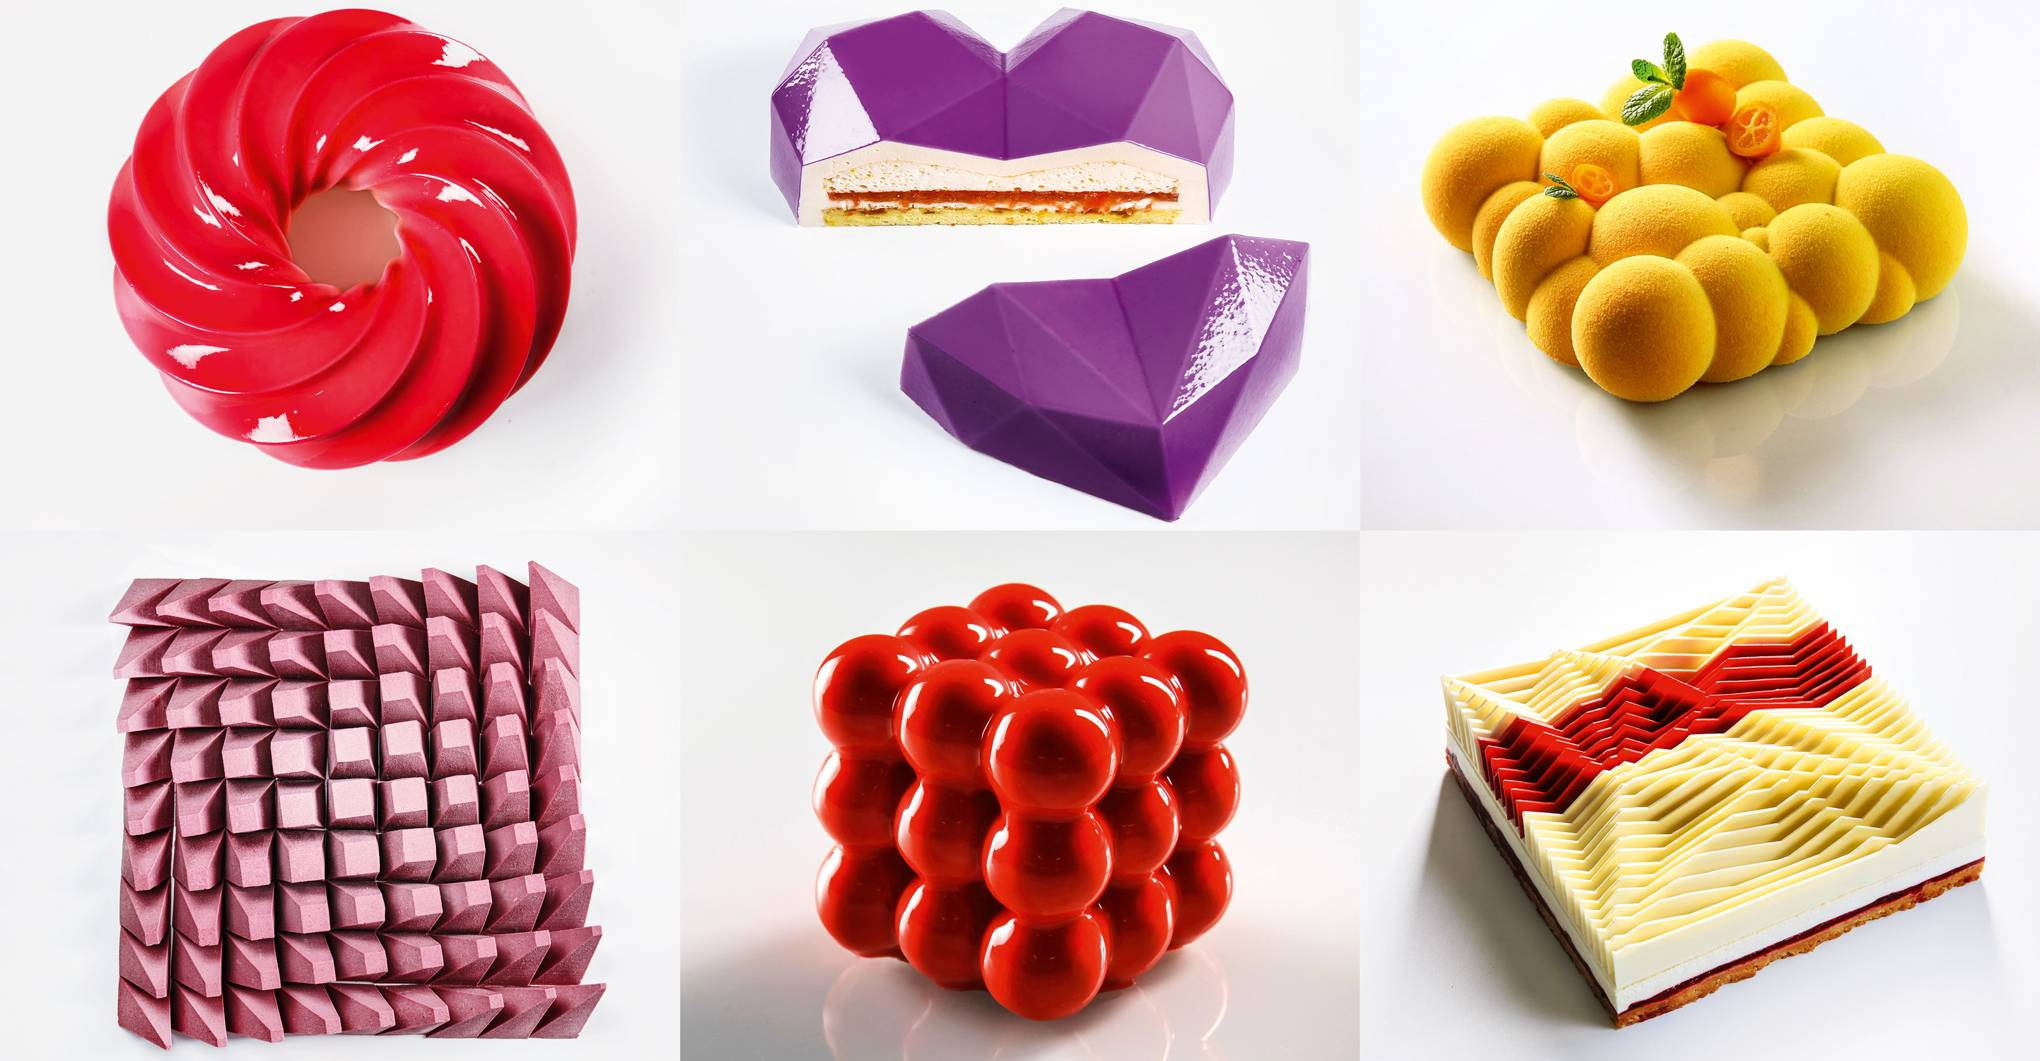 The social sensation: 3D-printed puddings